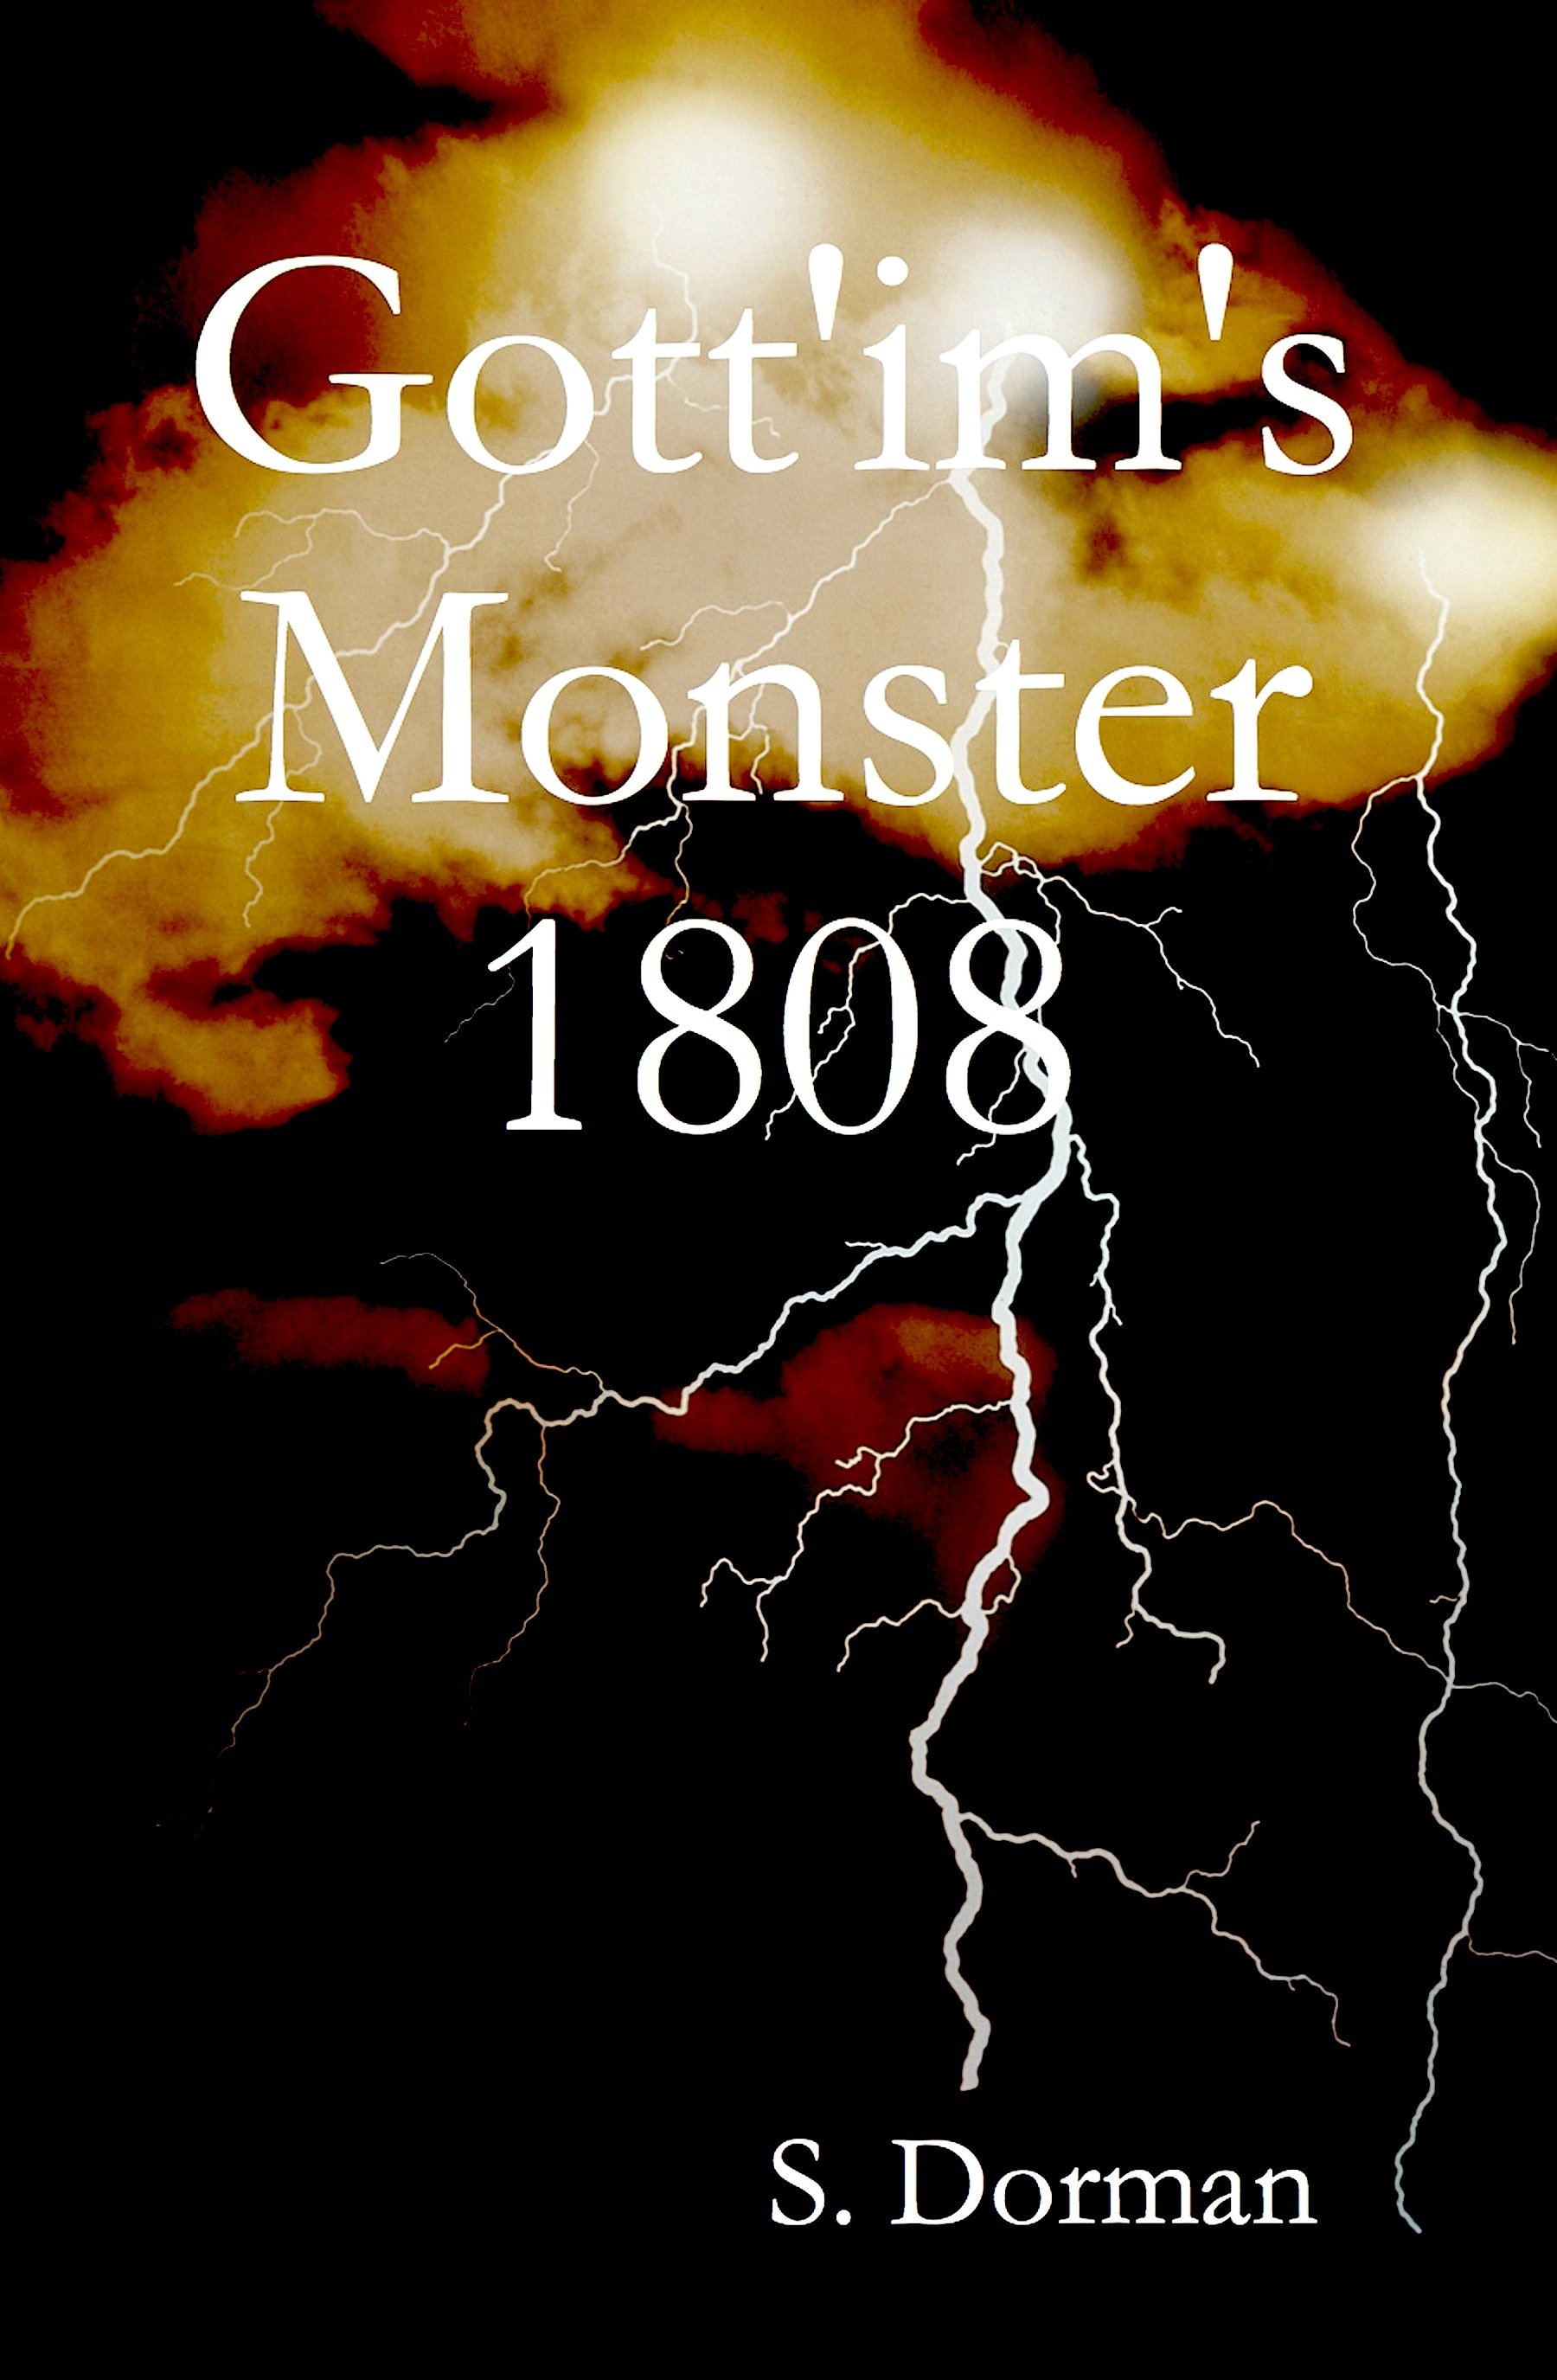 Gott'im's Monster 1808 e-book , also available at most online venues, e-book and print